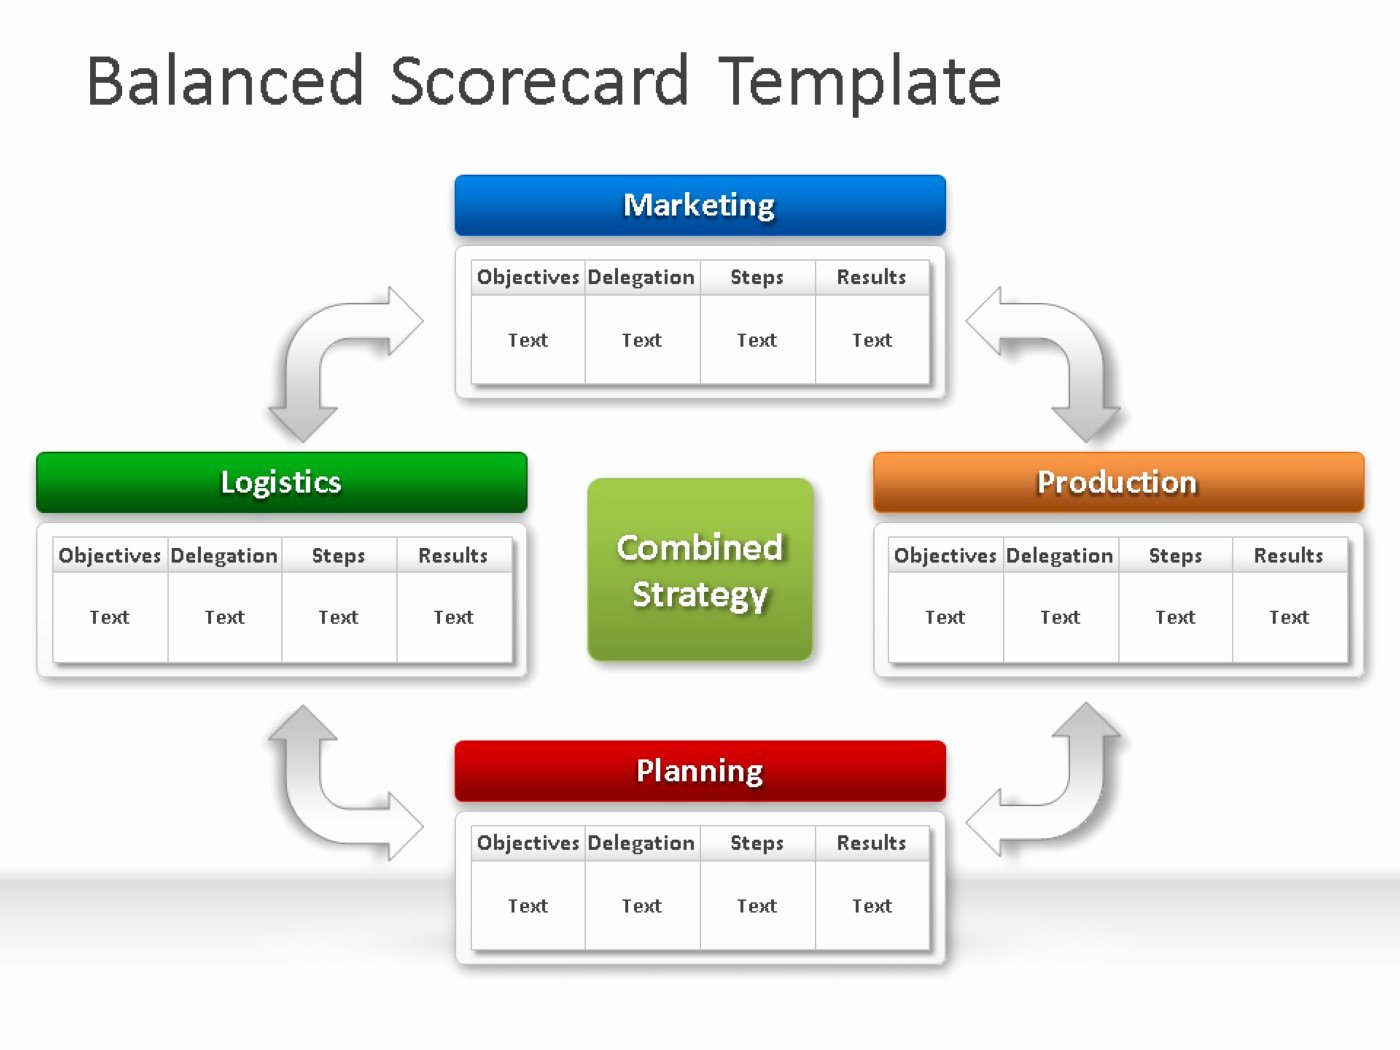 Balanced Scorecard Template Ppt Awesome Download Cuadro De Mando Integral Bsc Qpr